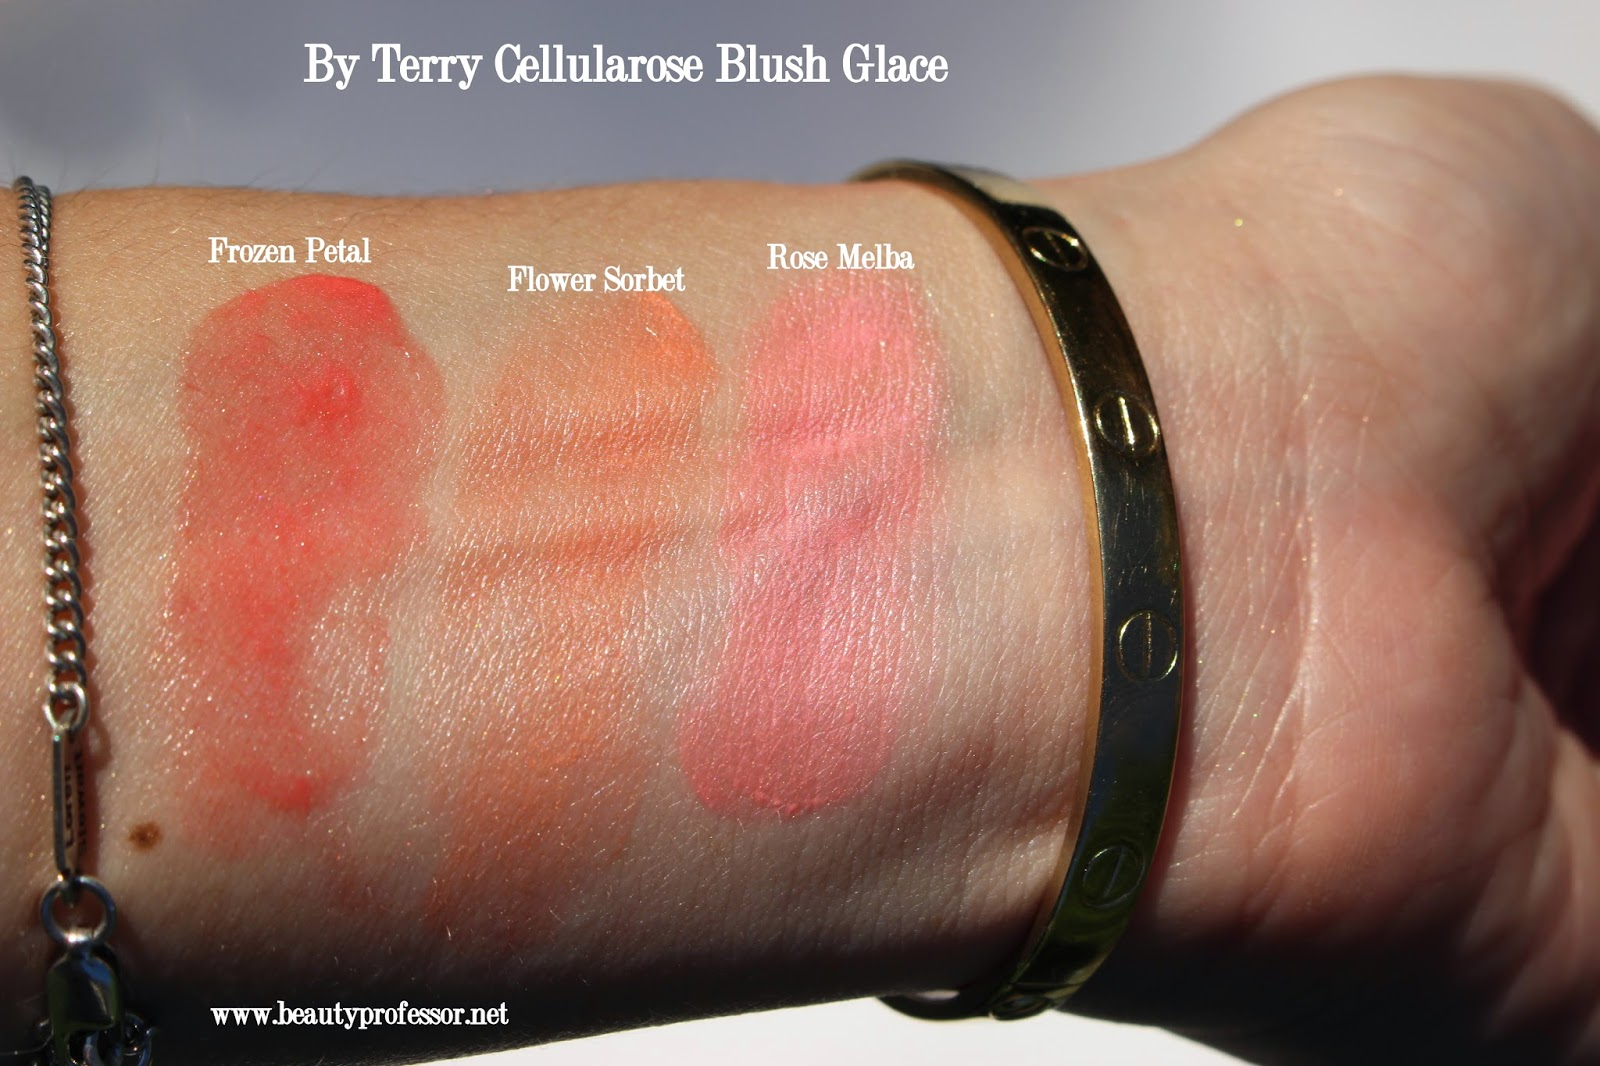 by terry cellularose blush glace